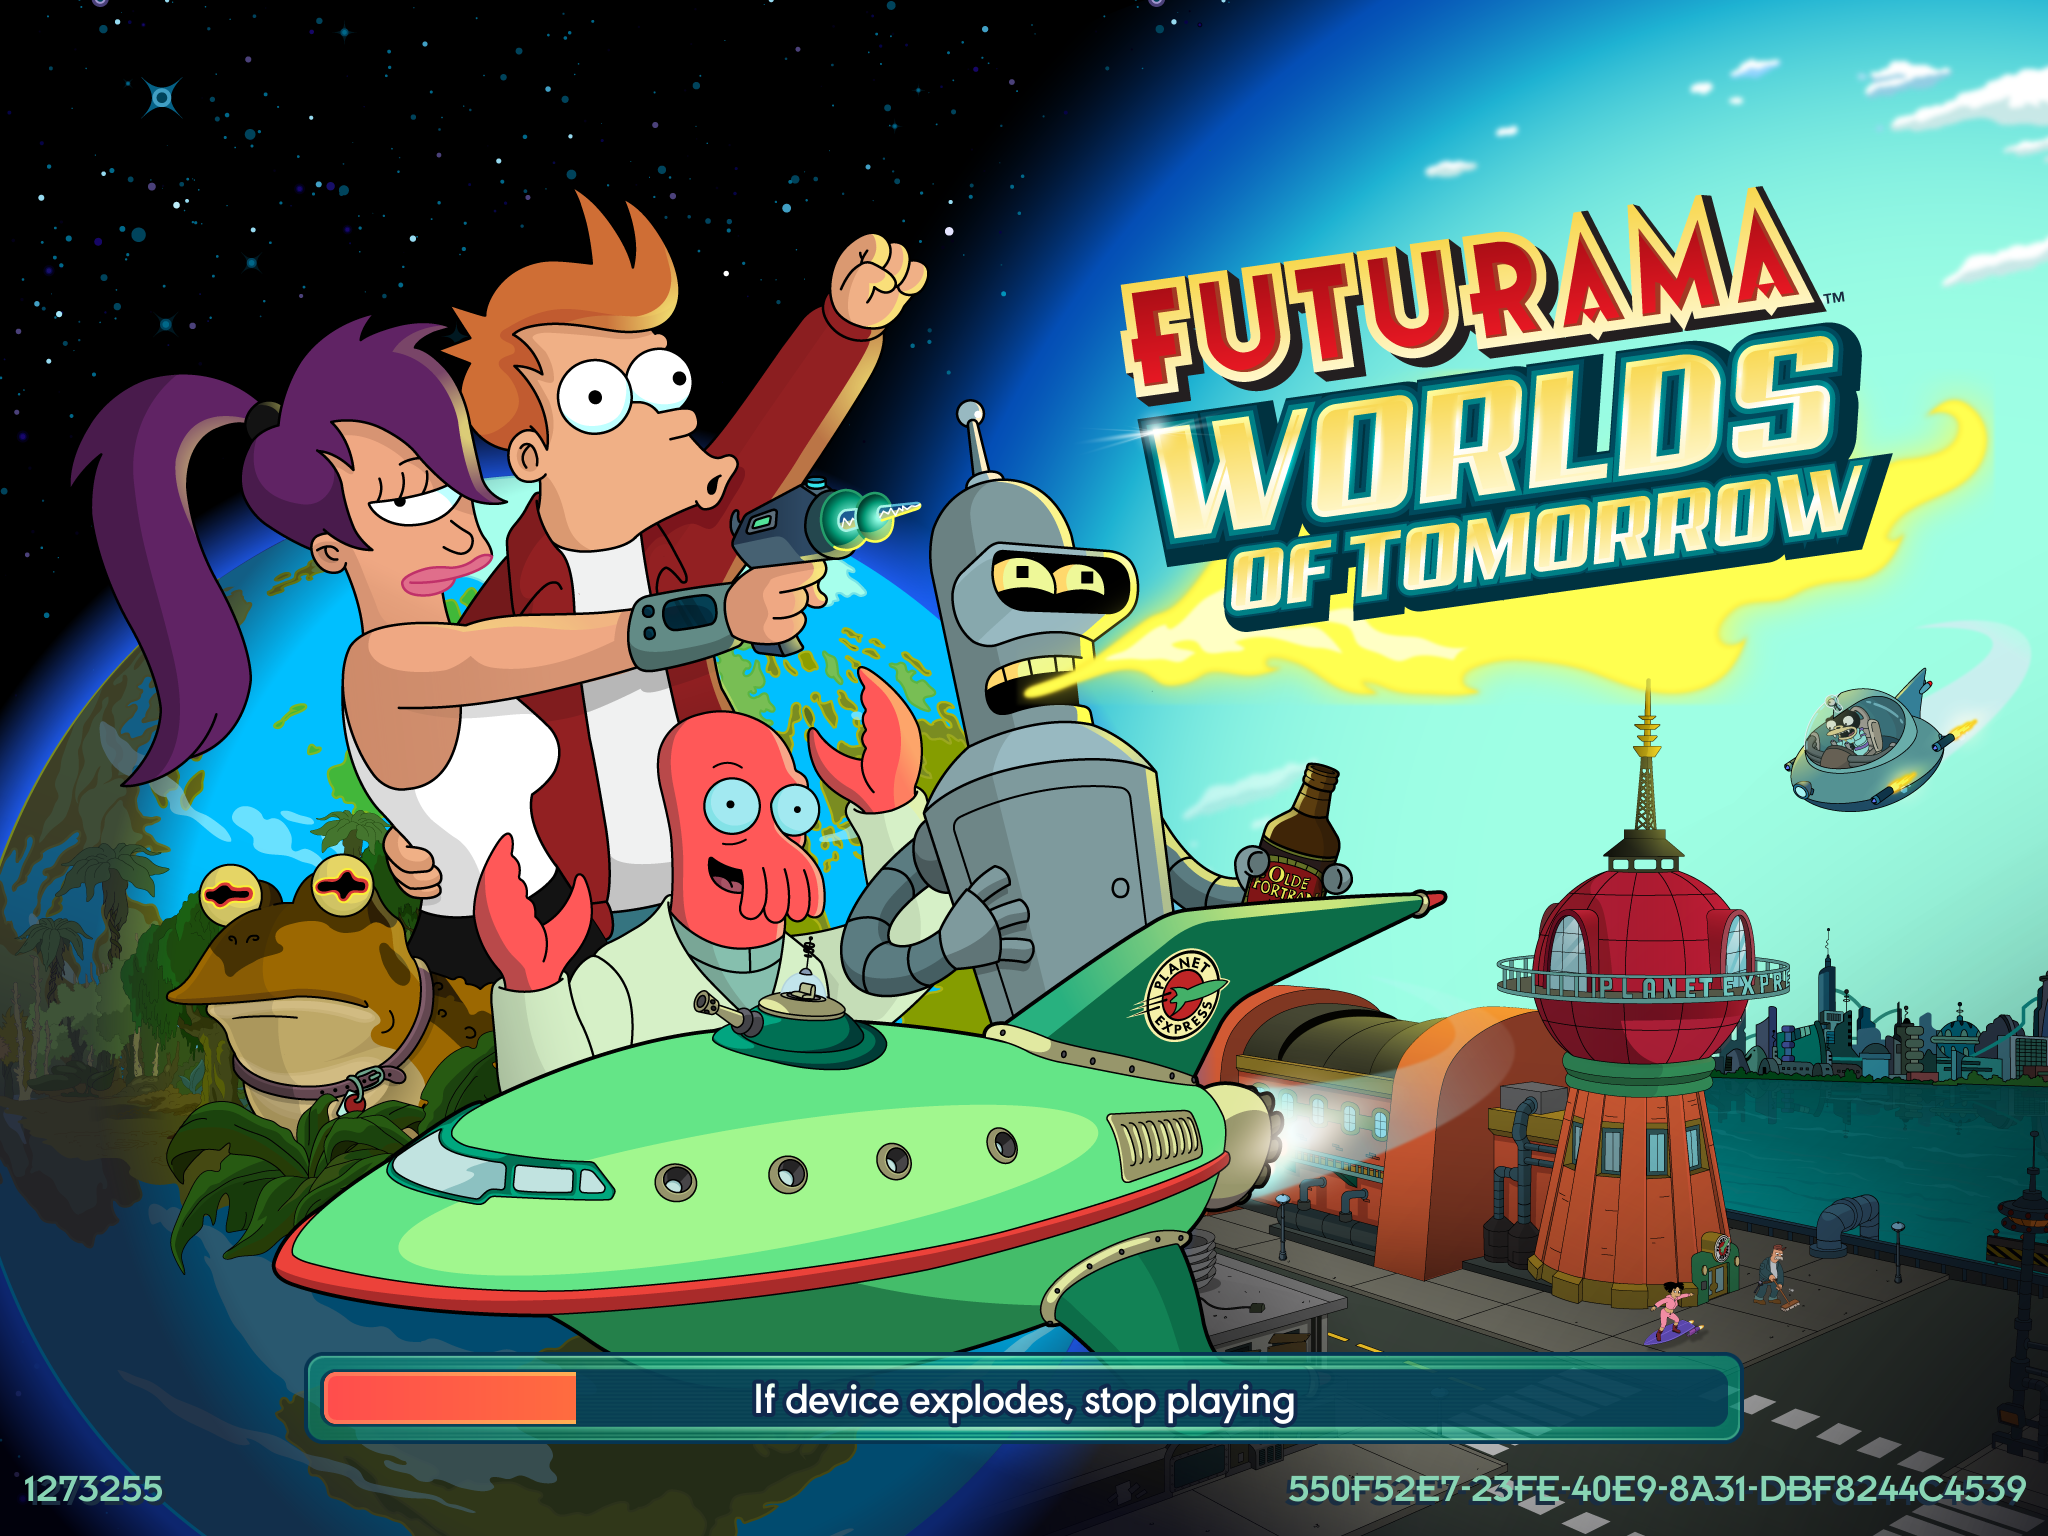 Comment bien commencer son jeu futurama World of tomorow ?